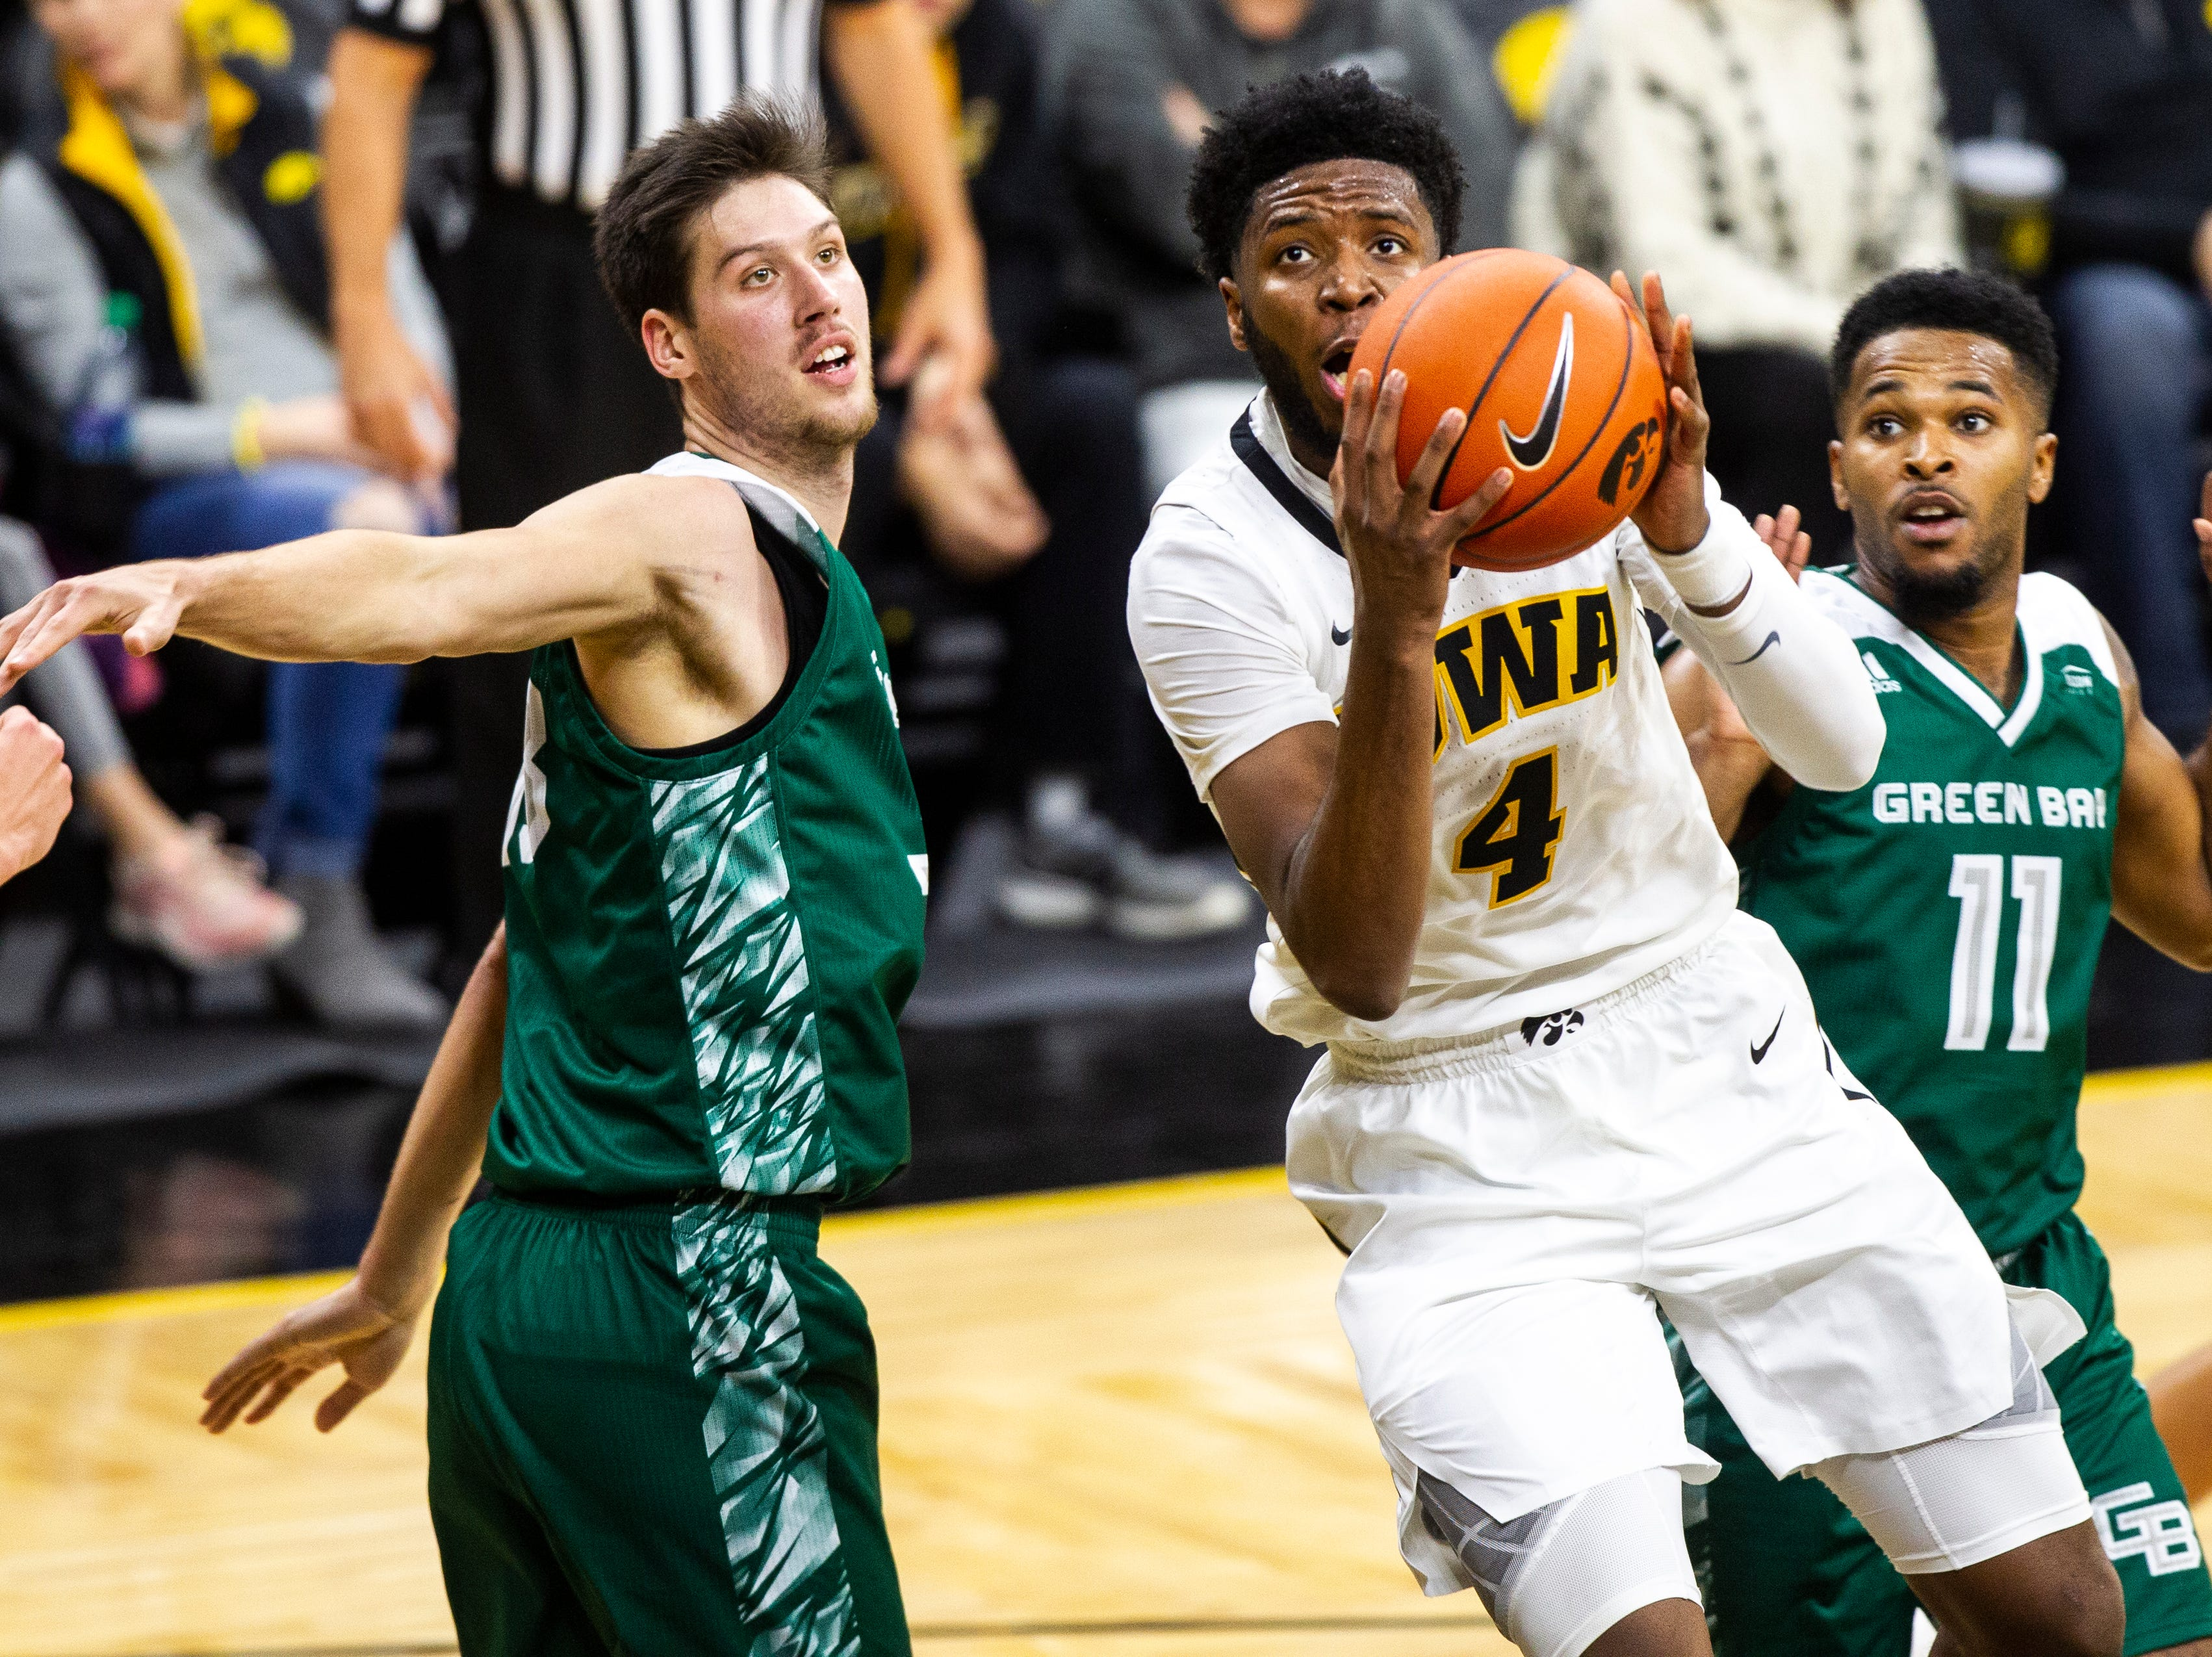 Iowa guard Isaiah Moss (4) attempts a layup during an NCAA men's basketball game in the 2K Empire Classic on Sunday, Nov. 11, 2018, at Carver-Hawkeye Arena in Iowa City.